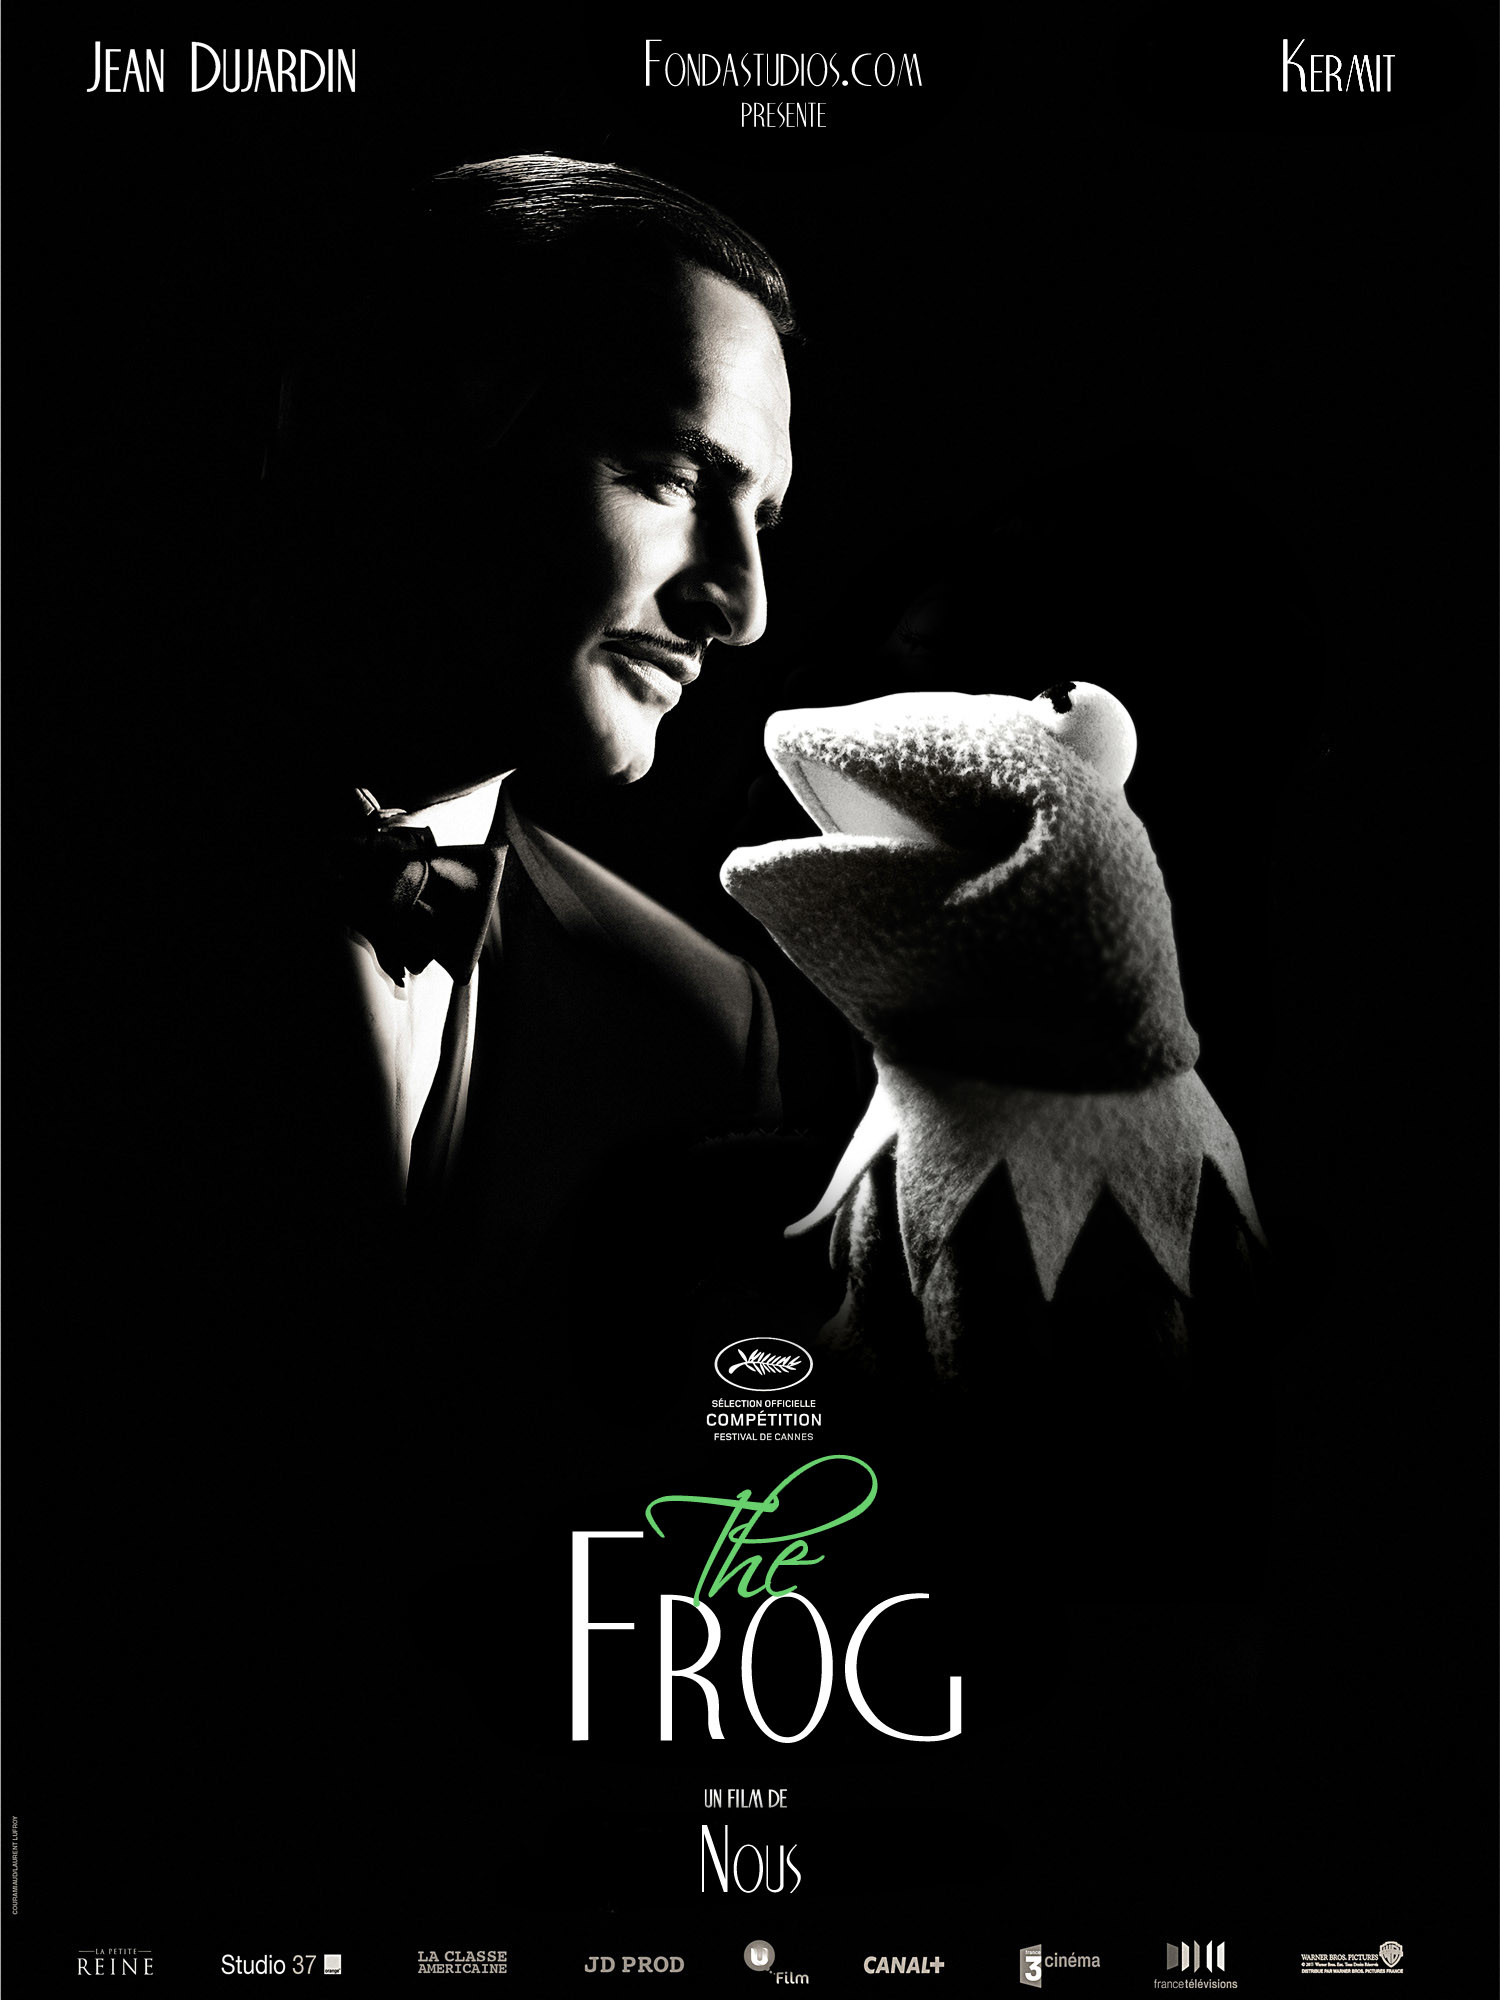 Kermit the Frog images The Frog or The Artist HD wallpaper and background  photos